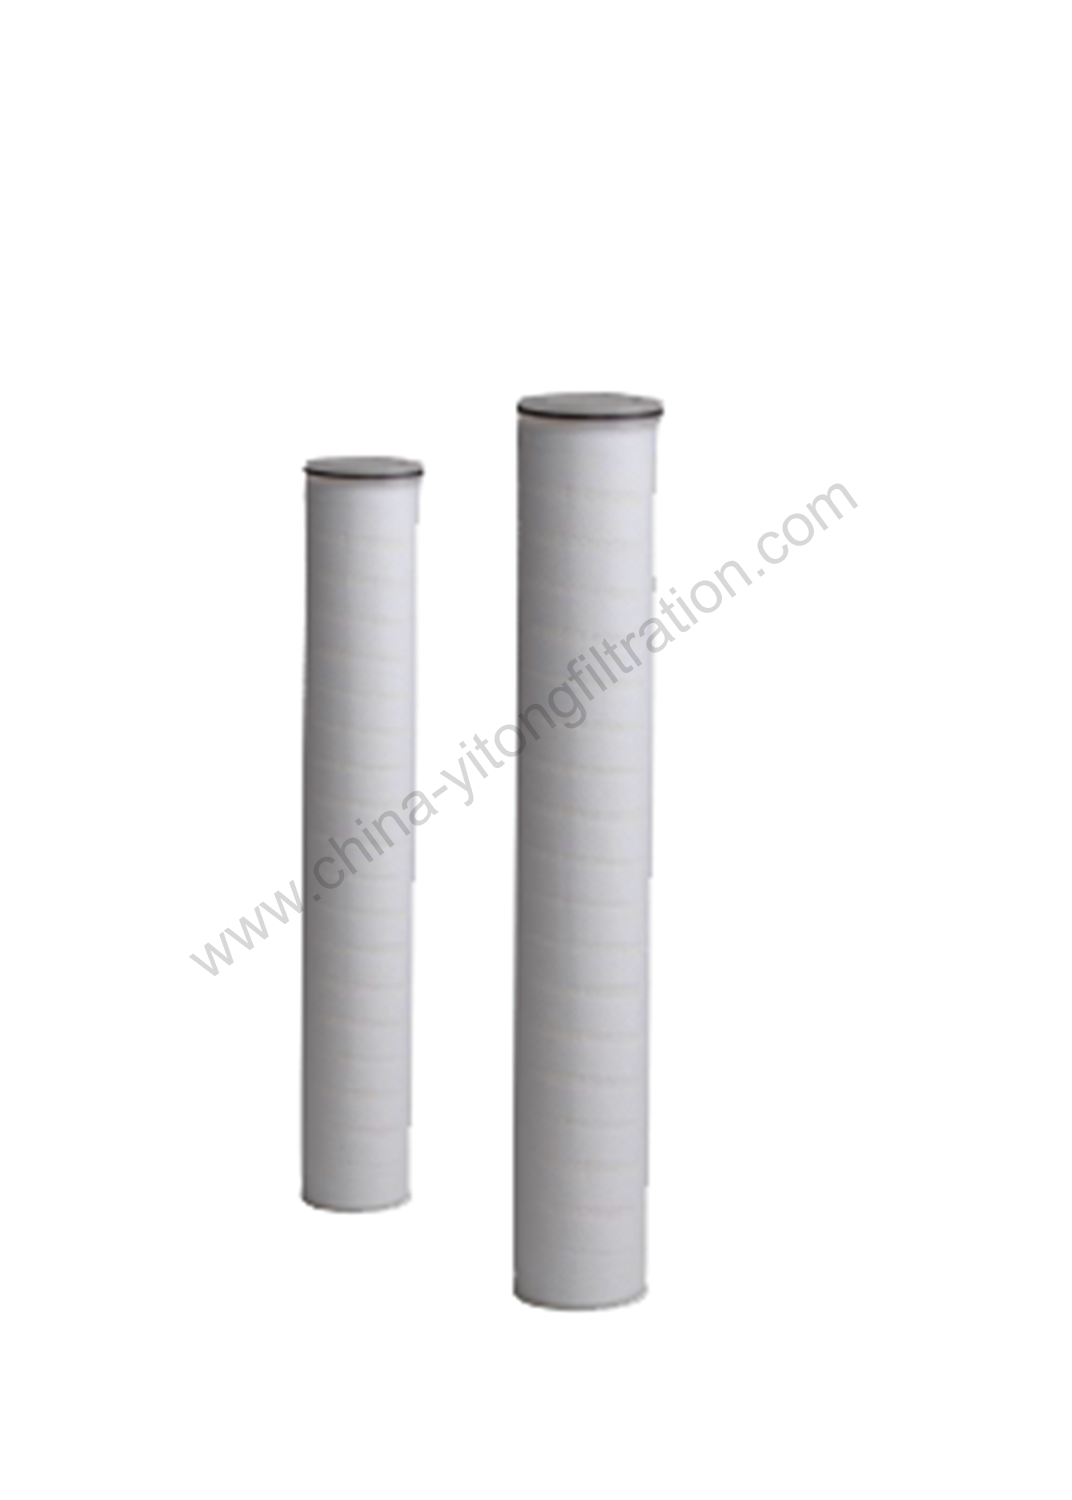 YTHF High Flow Filter Cartridge